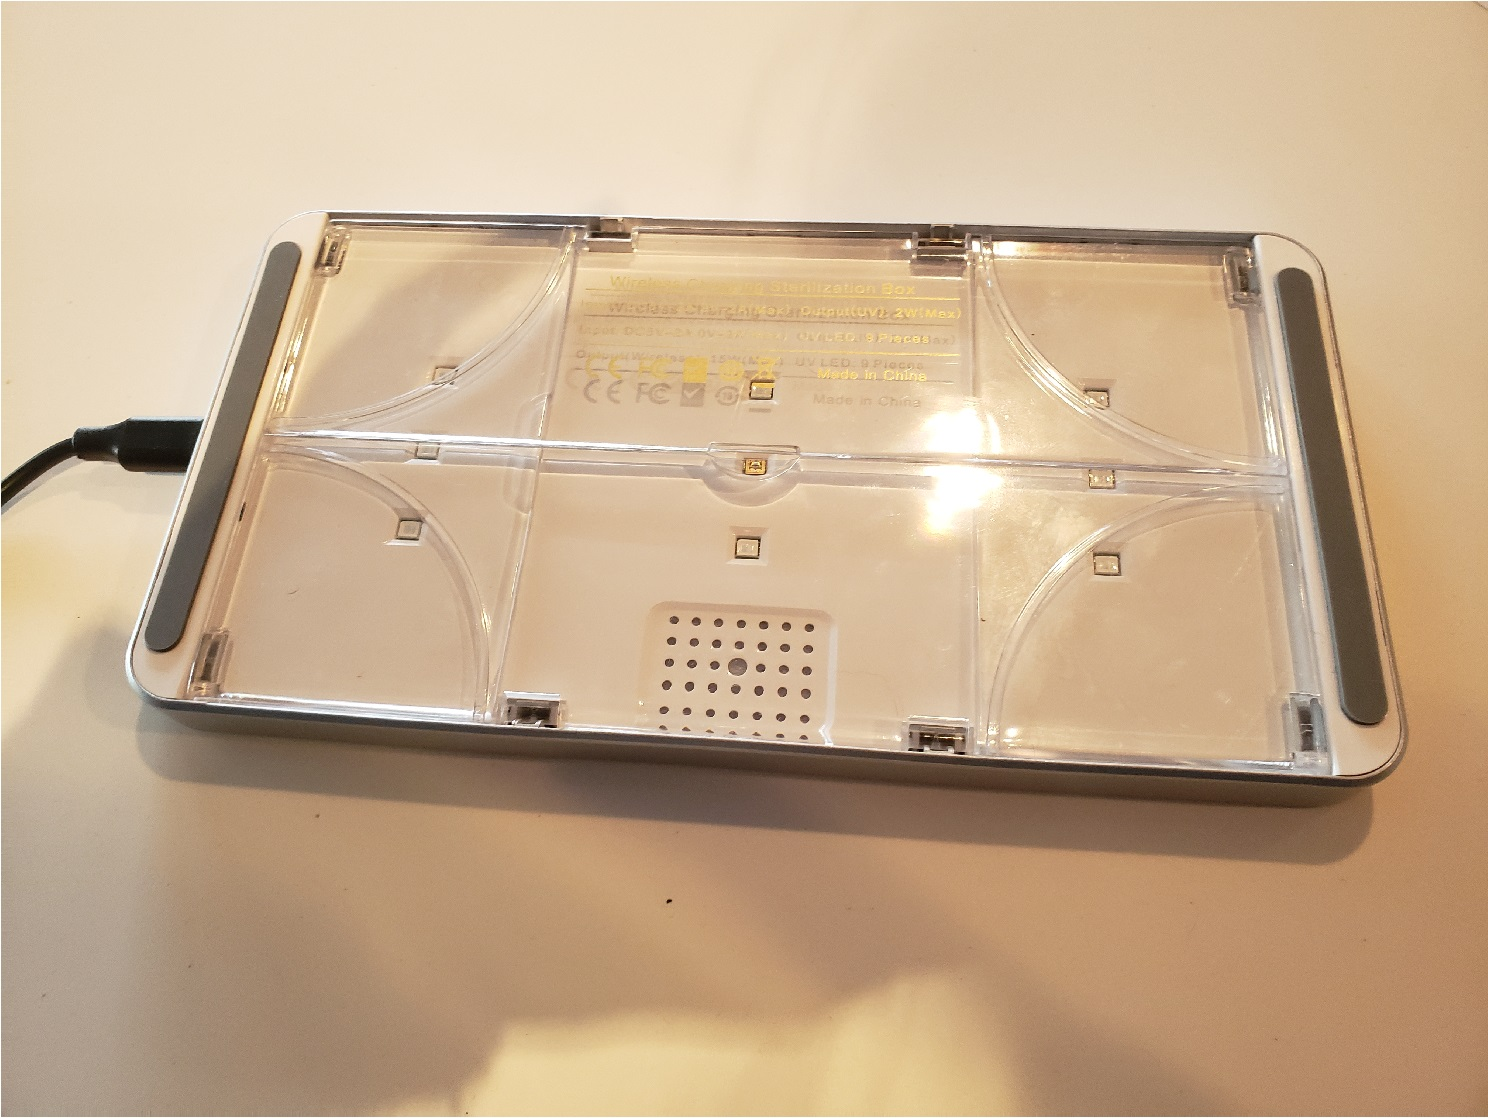 image of the underside of the UV sterilizer box with box sides collapsed